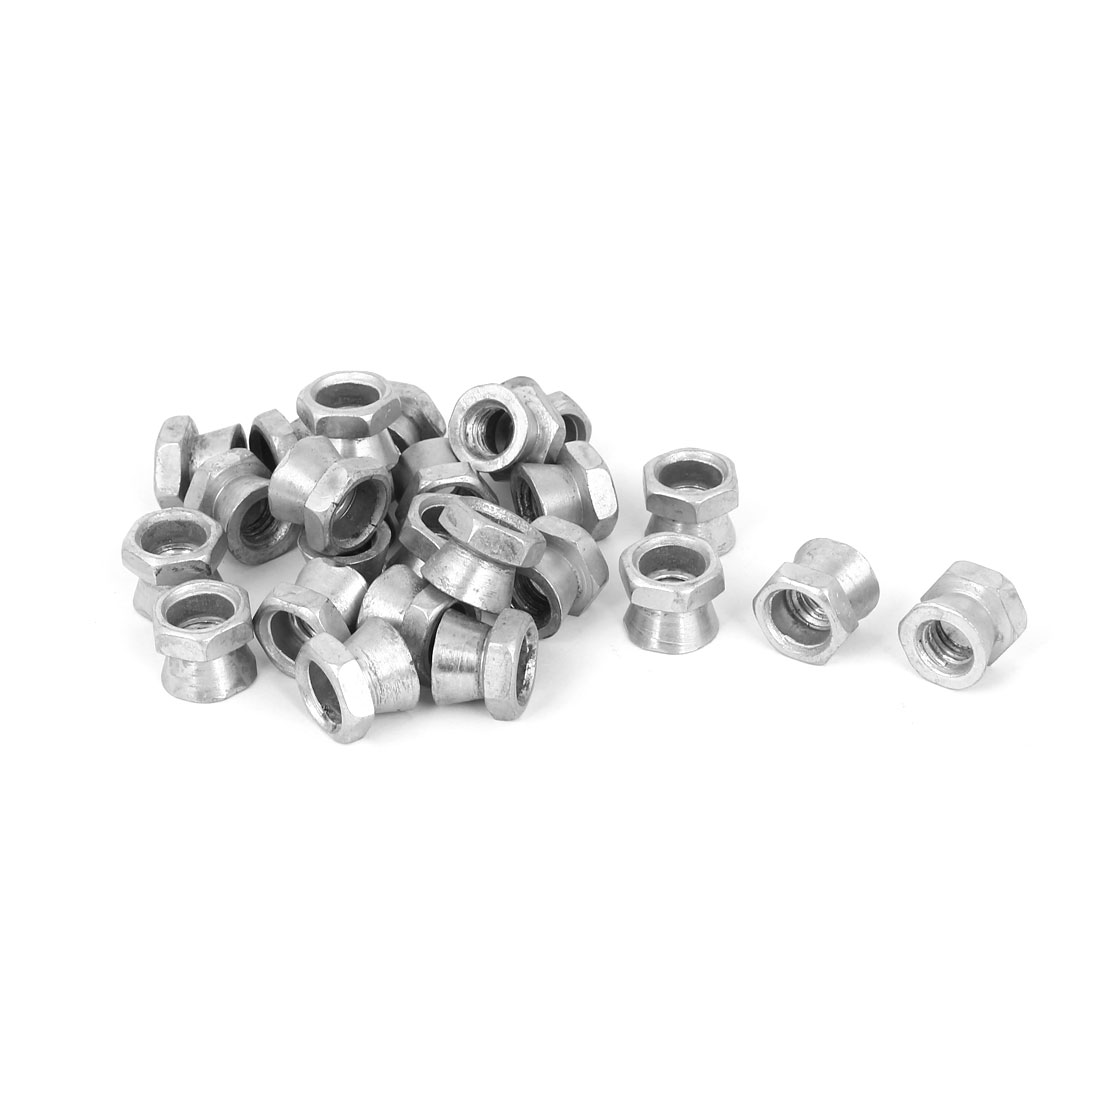 M10 Female Thread Tamper Proof Galvanised Security Shear Nuts 25 Pcs